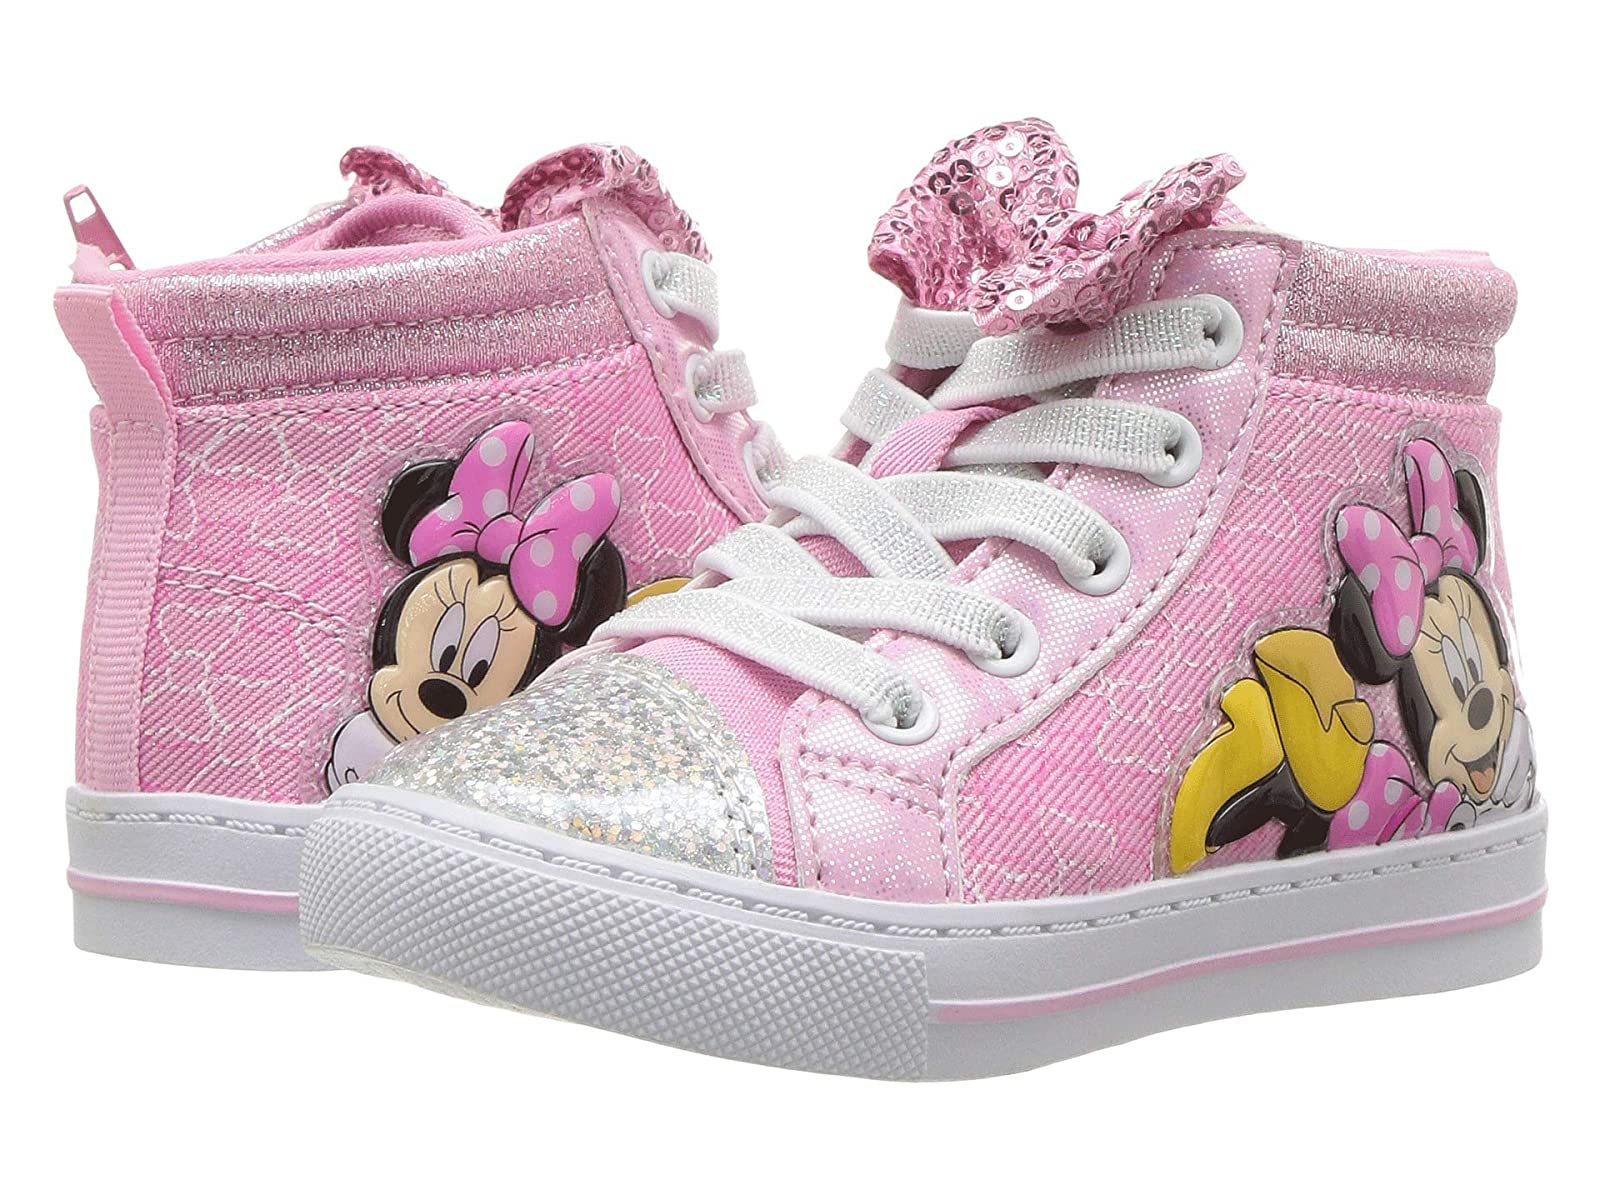 Josmo Top Kids Minnie Bow High Top Josmo (Toddler/Little Kid) 94cb8a